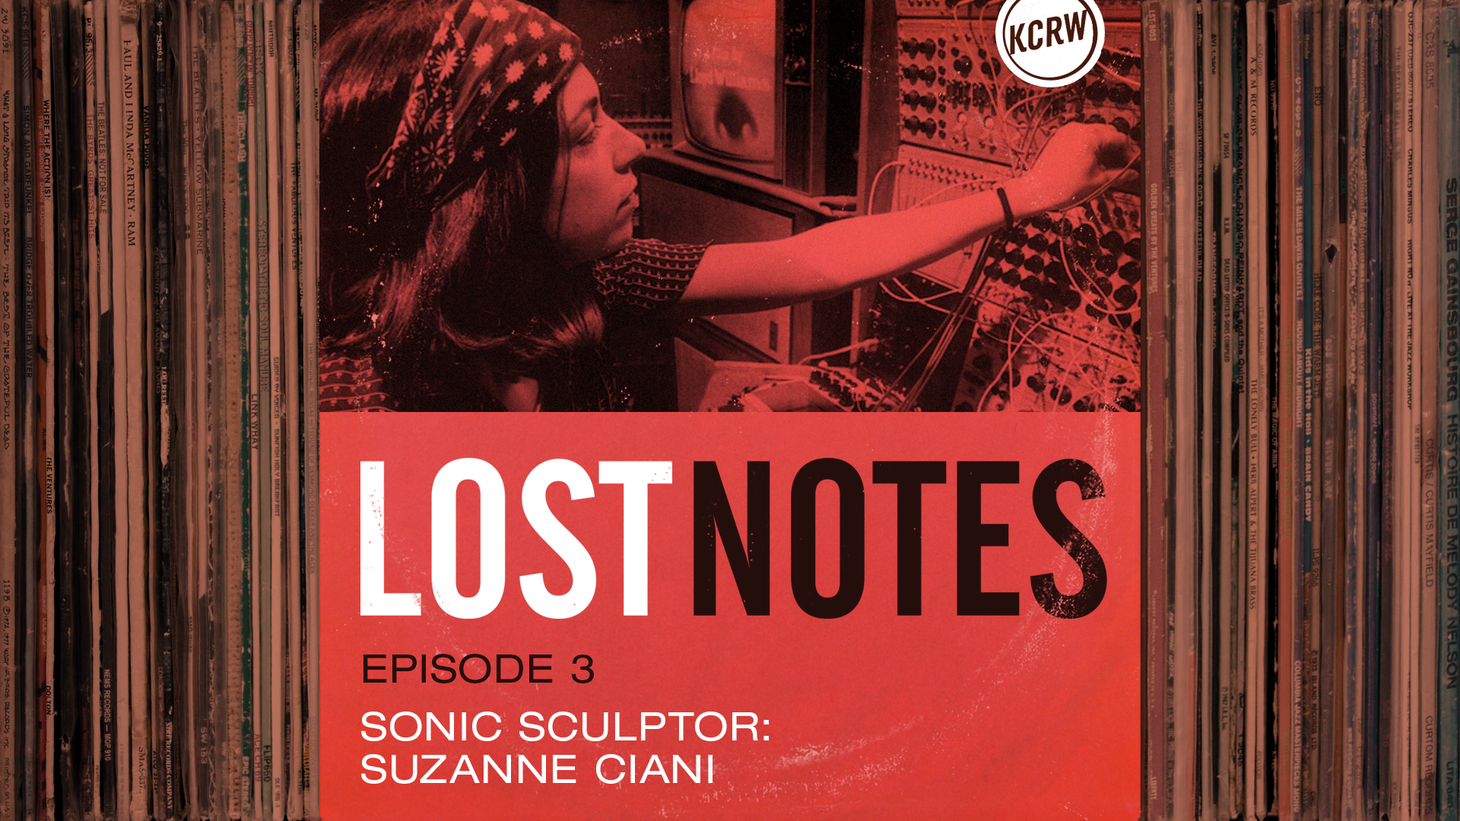 Synth pioneer Suzanne Ciani used an esoteric instrument to design some of the most well-known commercial sounds of the 20th century.